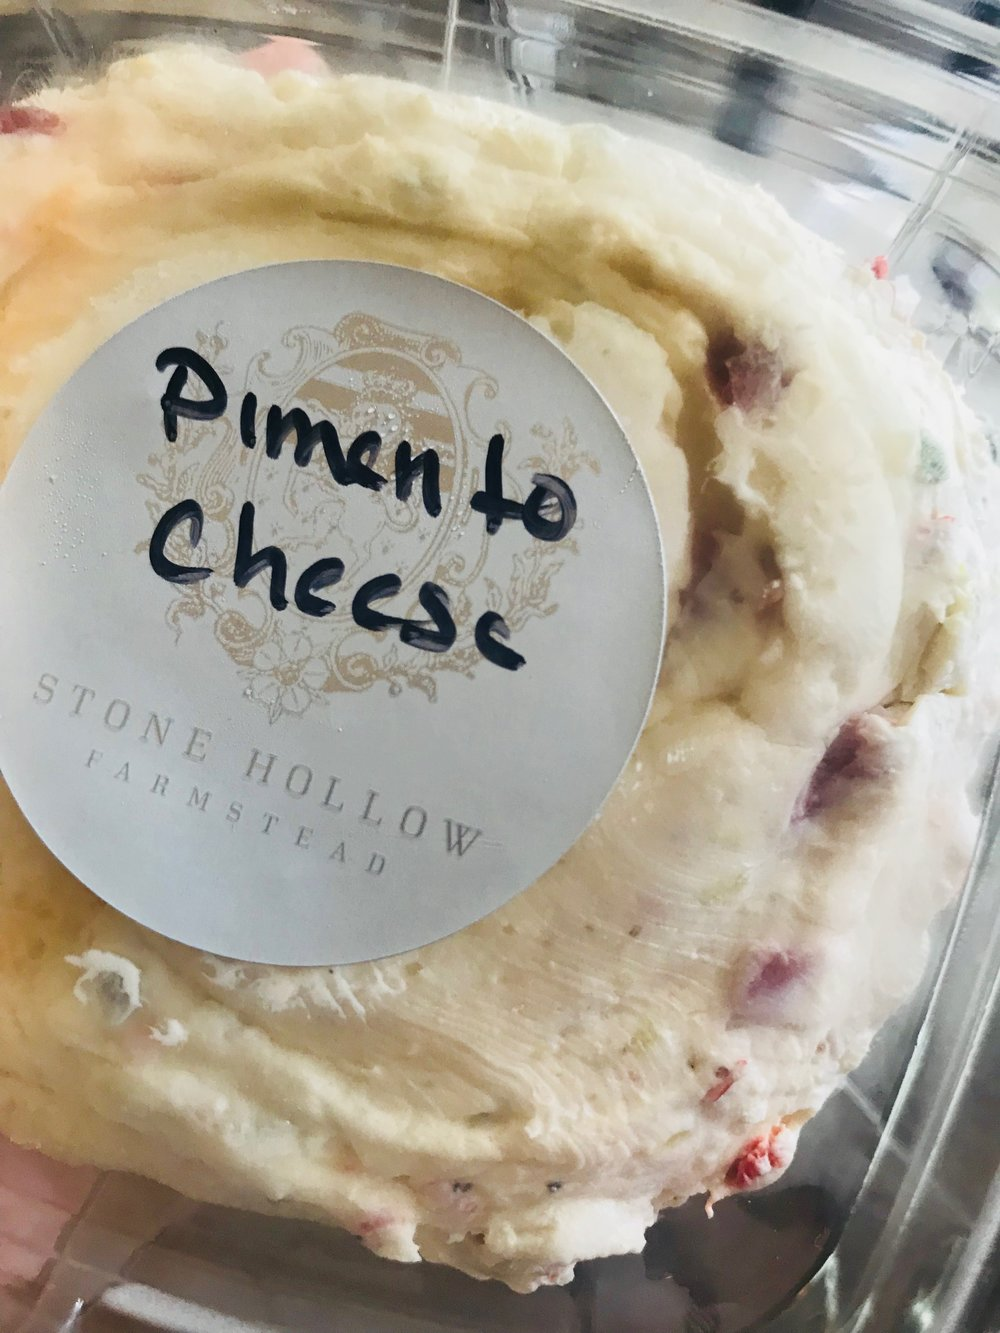 Pimento Cheese /  Stone Hollow Farmstead